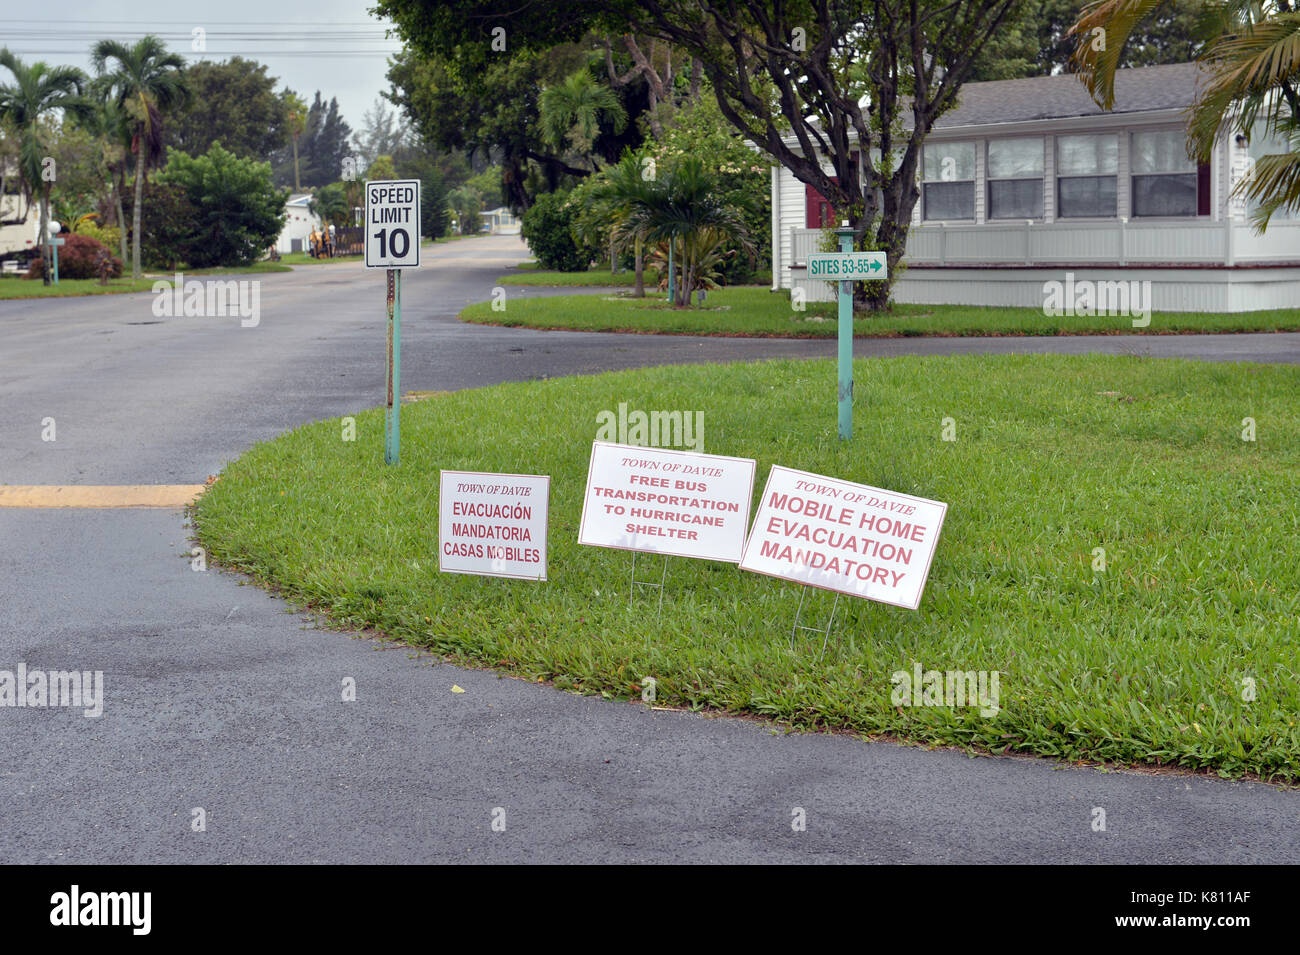 NEW YORK DALLIES OUT DAVIE, FL - SEPTEMBER 09: (EXCLUSIVE COVERAGE) Effects of Extreme Category 5 Hurricane Irma start to hit Florida, Which Is The largest Storm In US History. Mandatory Curfews are being issued across South Florida as the region clears roads ahead of Hurricane Irma: 7 p.m. in Key Biscayne, 8 p.m. in North Miami Beach, 4 p.m. in Broward County, 7 p.m. in the city of Miami and 8 p.m. in Miami Beach. Key Biscayne issued a curfew starting 7 p.m. through 7 a.m. The first death in Florida was a Davie man who fell off his ladder putting up shutters on September 9, 2017 in Fort La - Stock Image